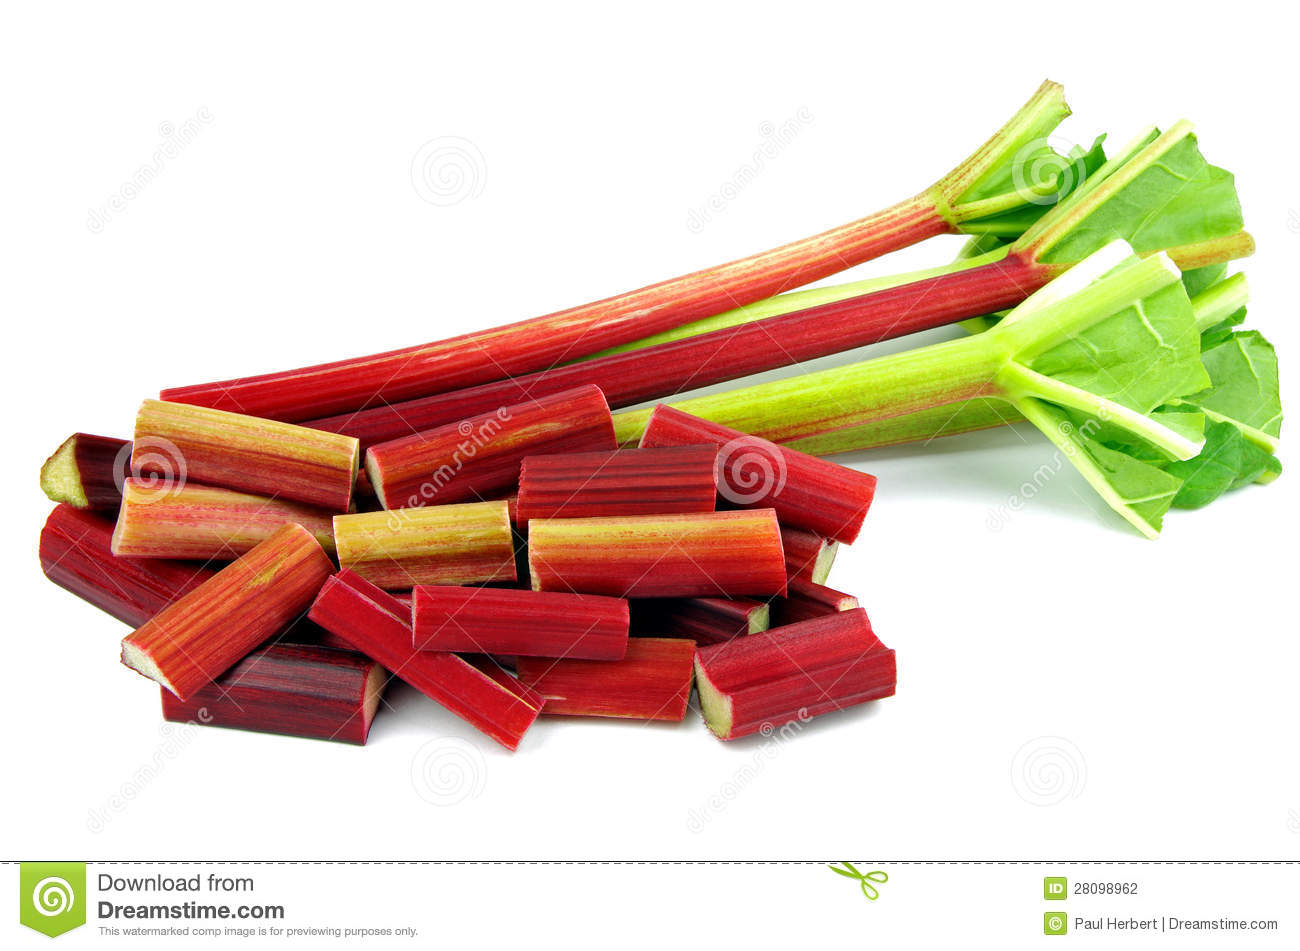 Diced Rhubarb Royalty Free Stock Images.